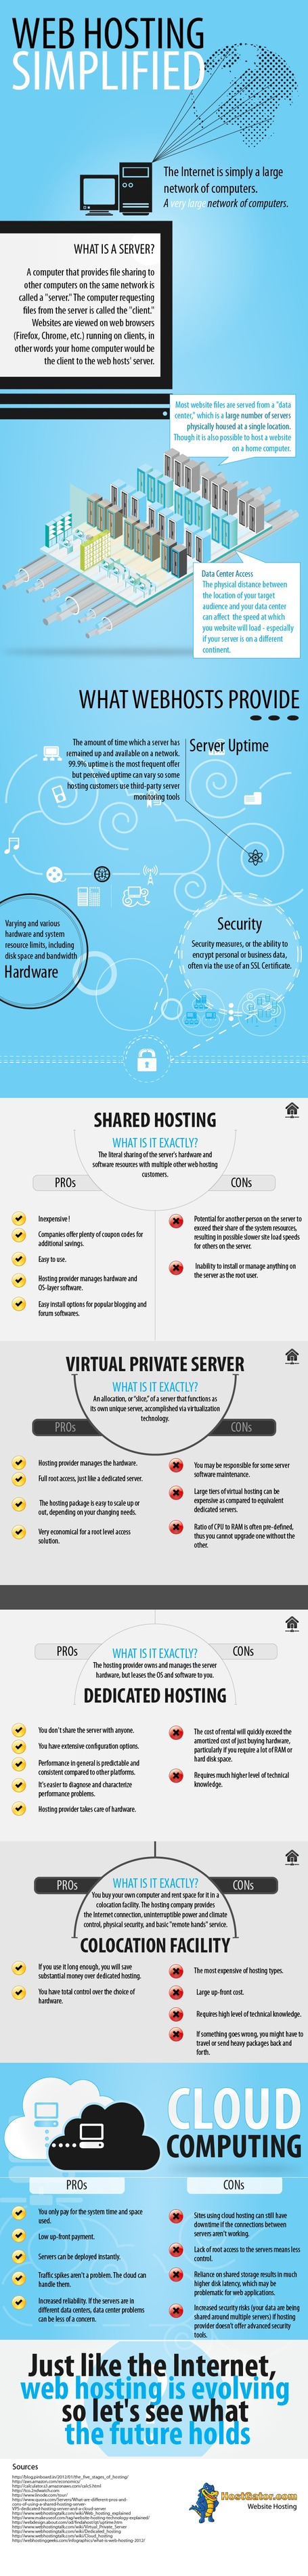 INFOGRAPHIC: Web Hosting in a Nutshell | Cloud Central | Scoop.it